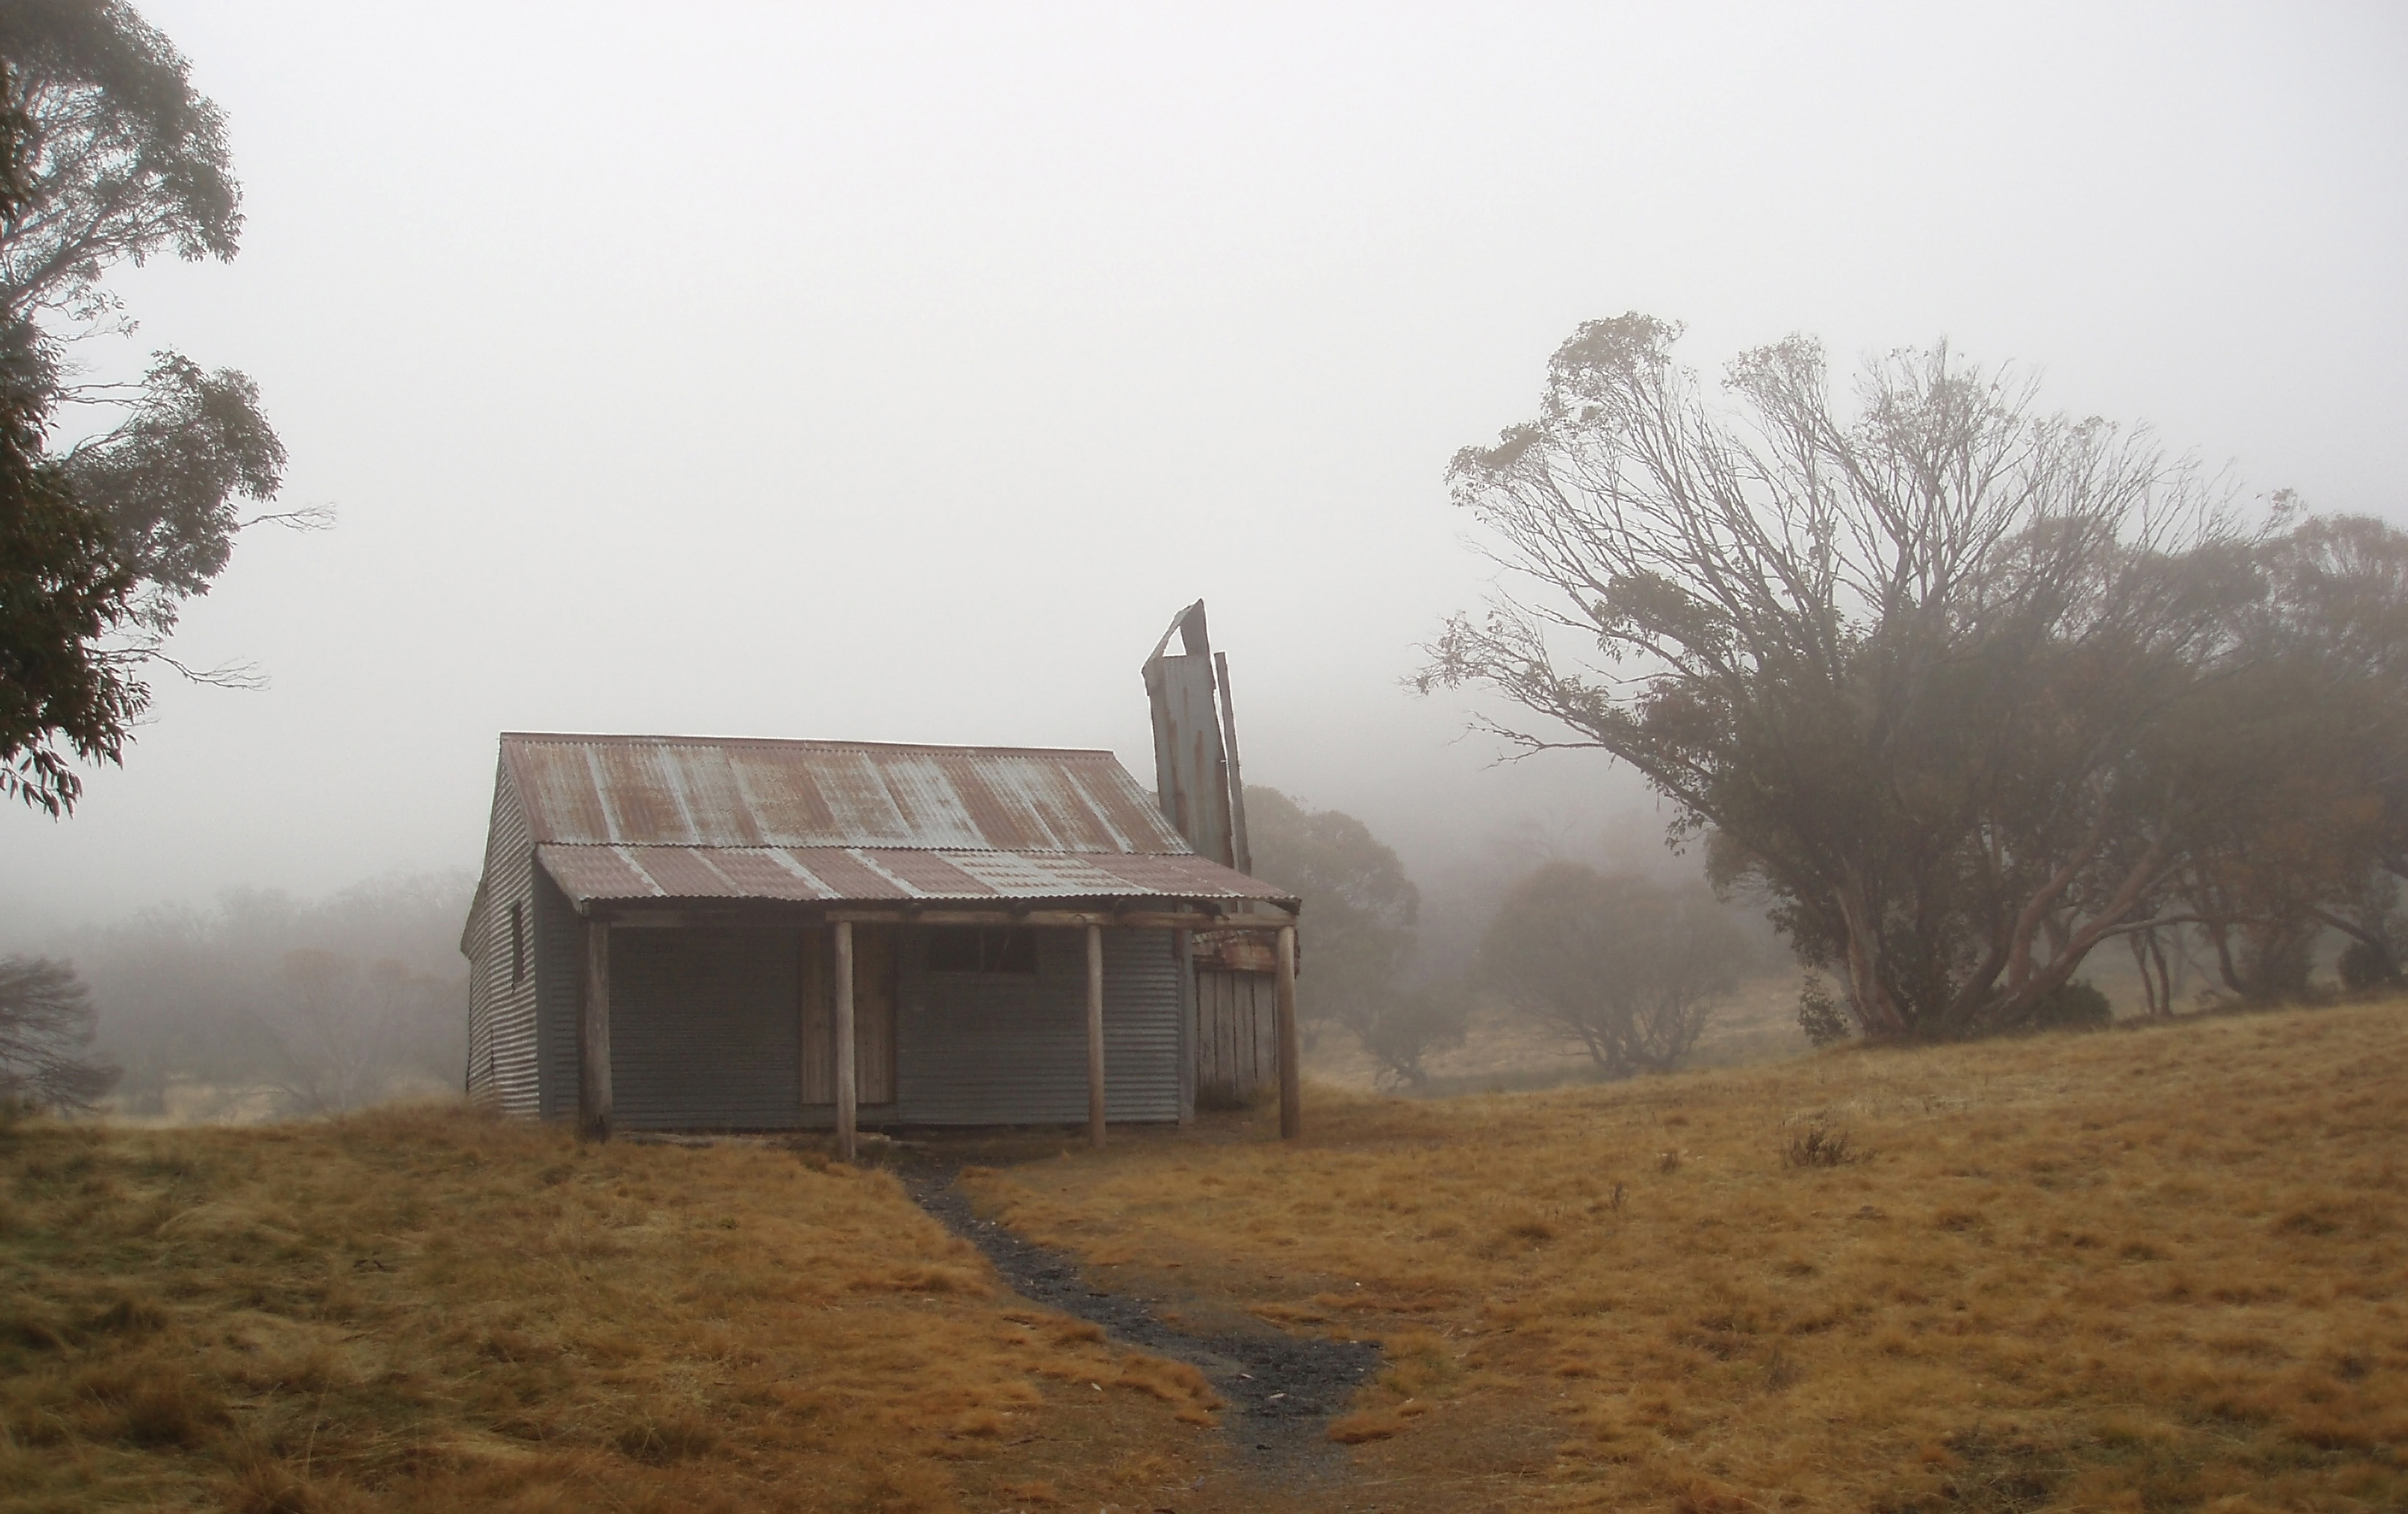 haunted looking old hut in the mist